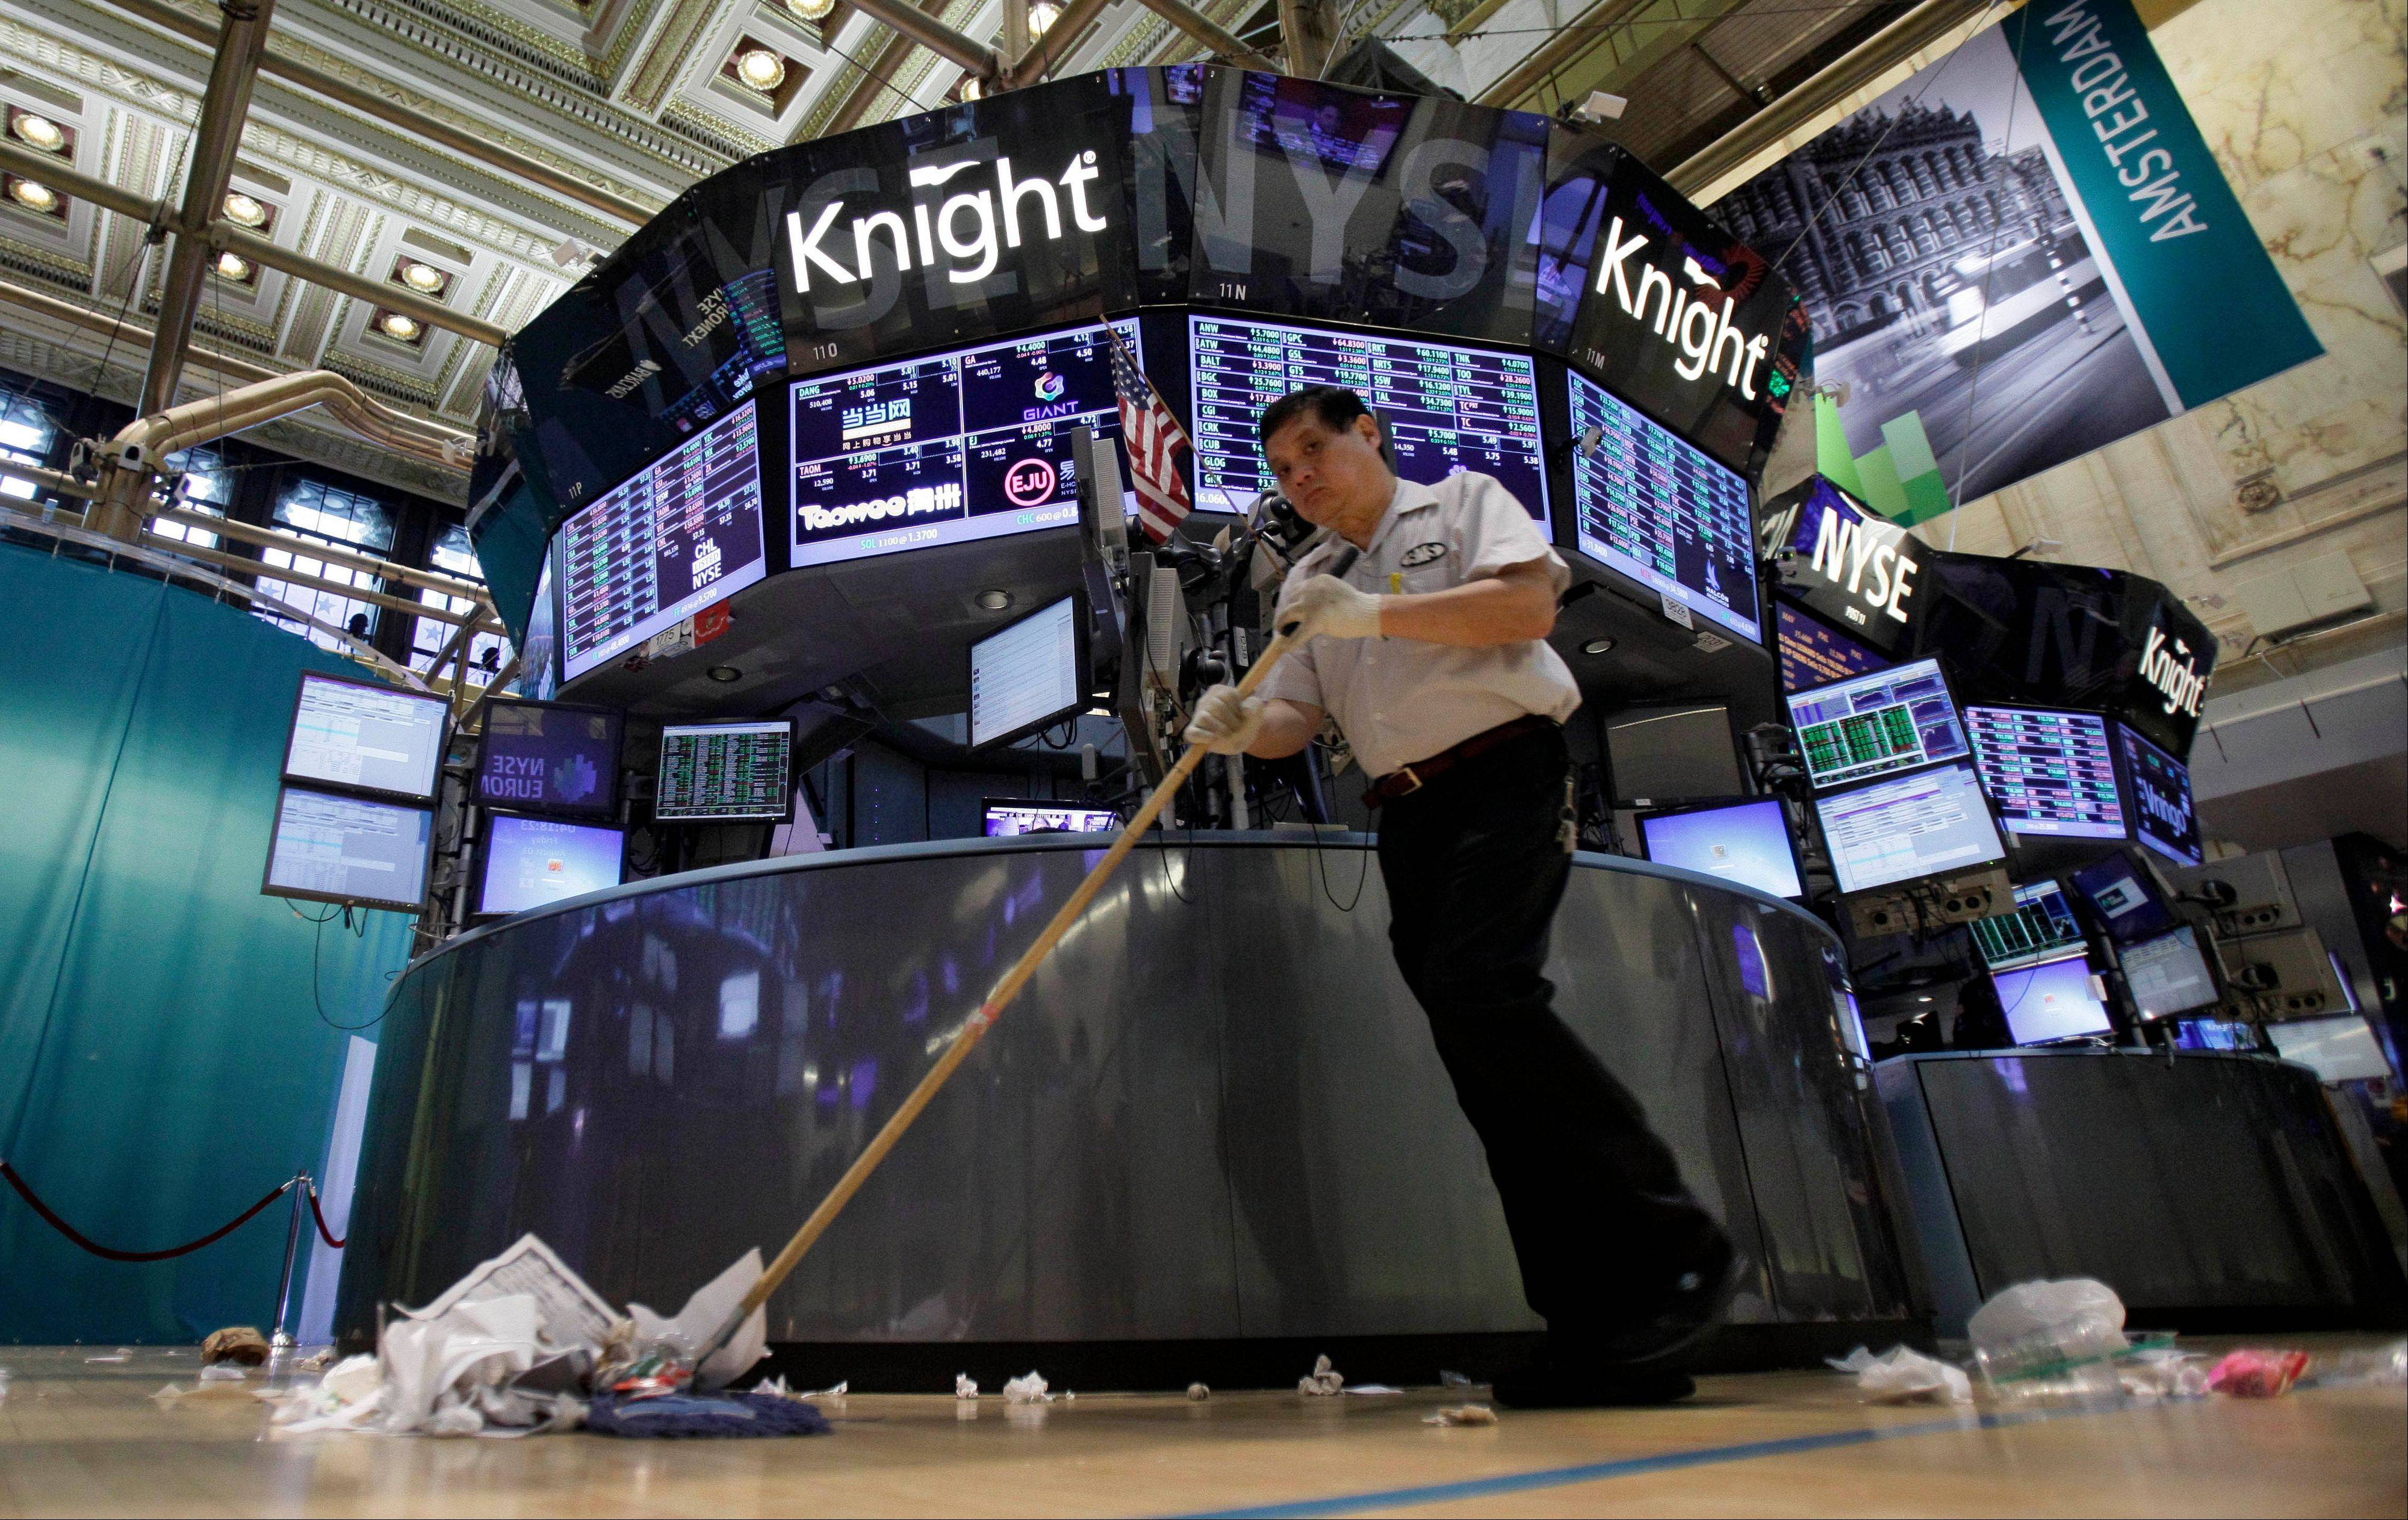 Billy Ying sweeps the floor around the Knight Capital trading post on the floor of the New York Stock Exchange after the close of trading Friday, Aug. 3, 2012. Knight Capital's stock soared after the battered trading firm received a financial lifeline and clients said they expect to resume routing trades through the system. (AP Photo/Richard Drew)